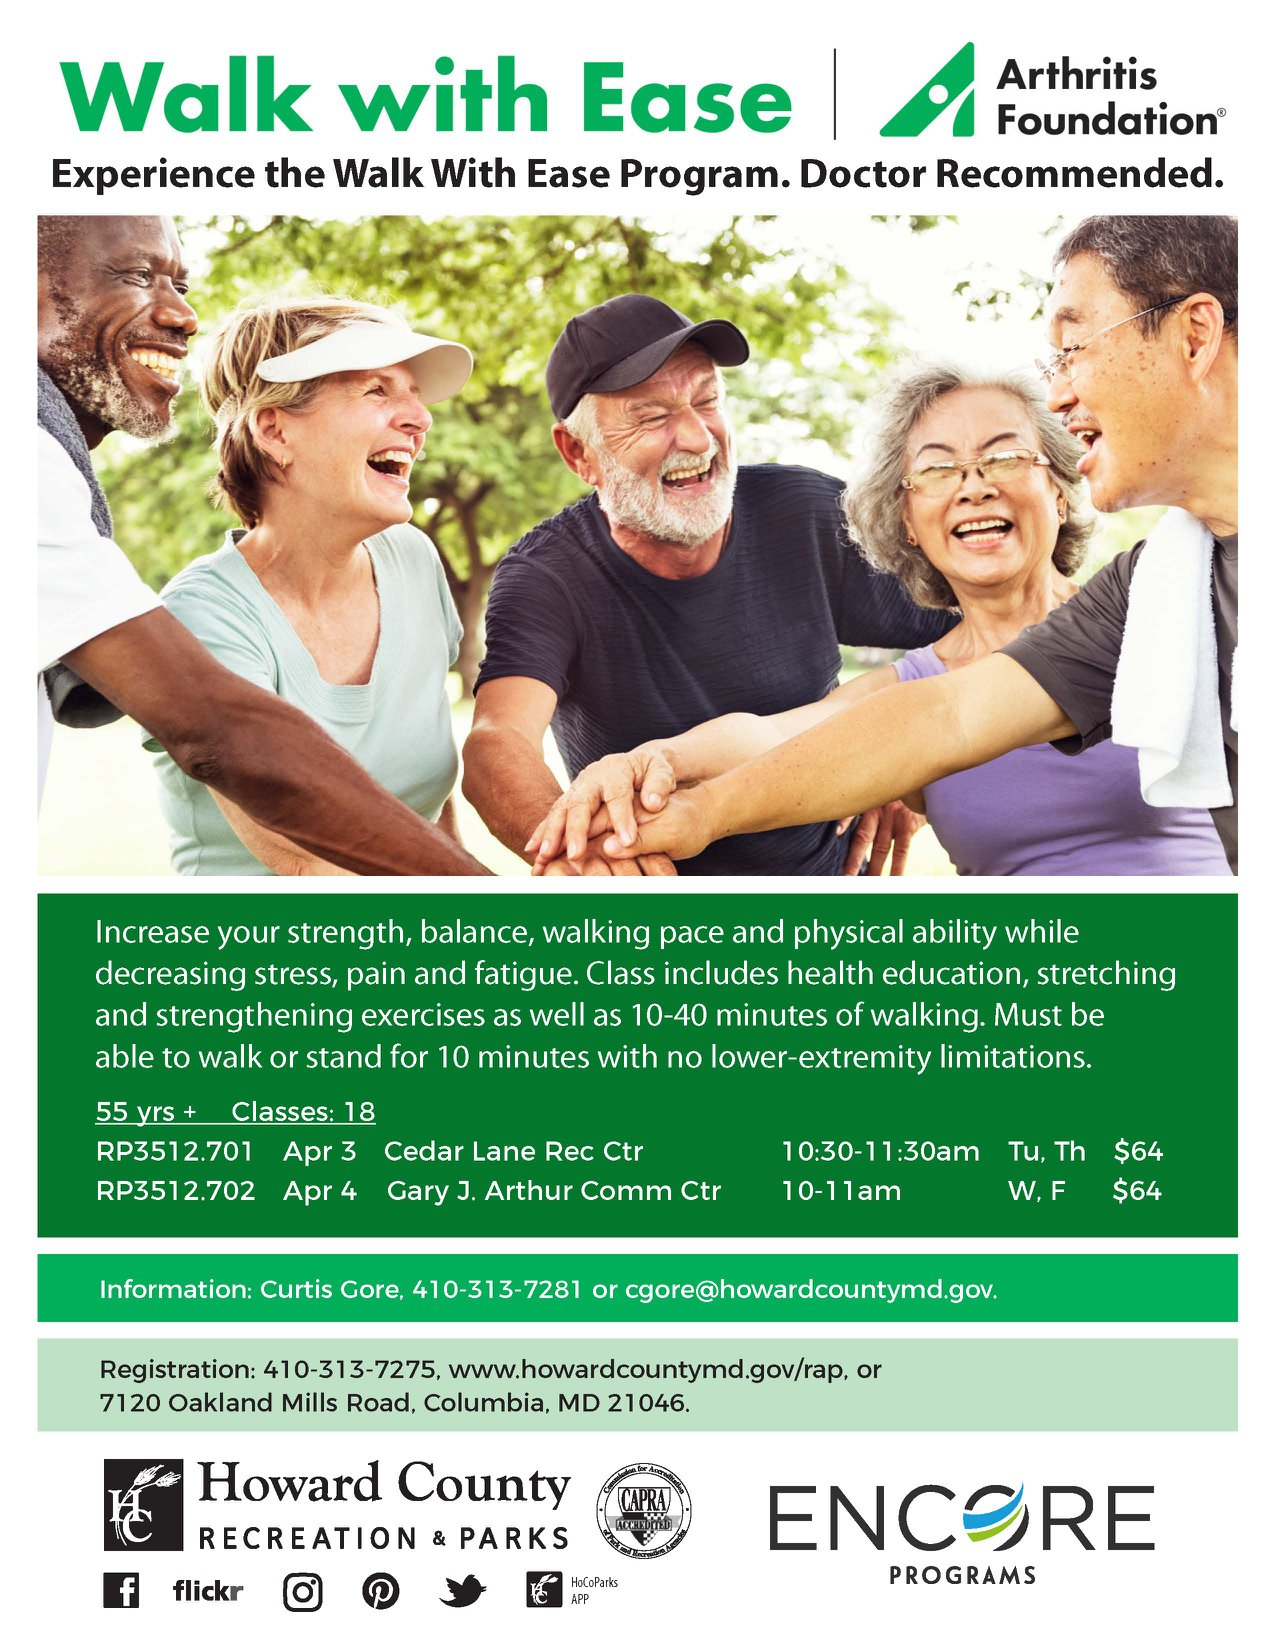 Arthritis Walk with Ease Program